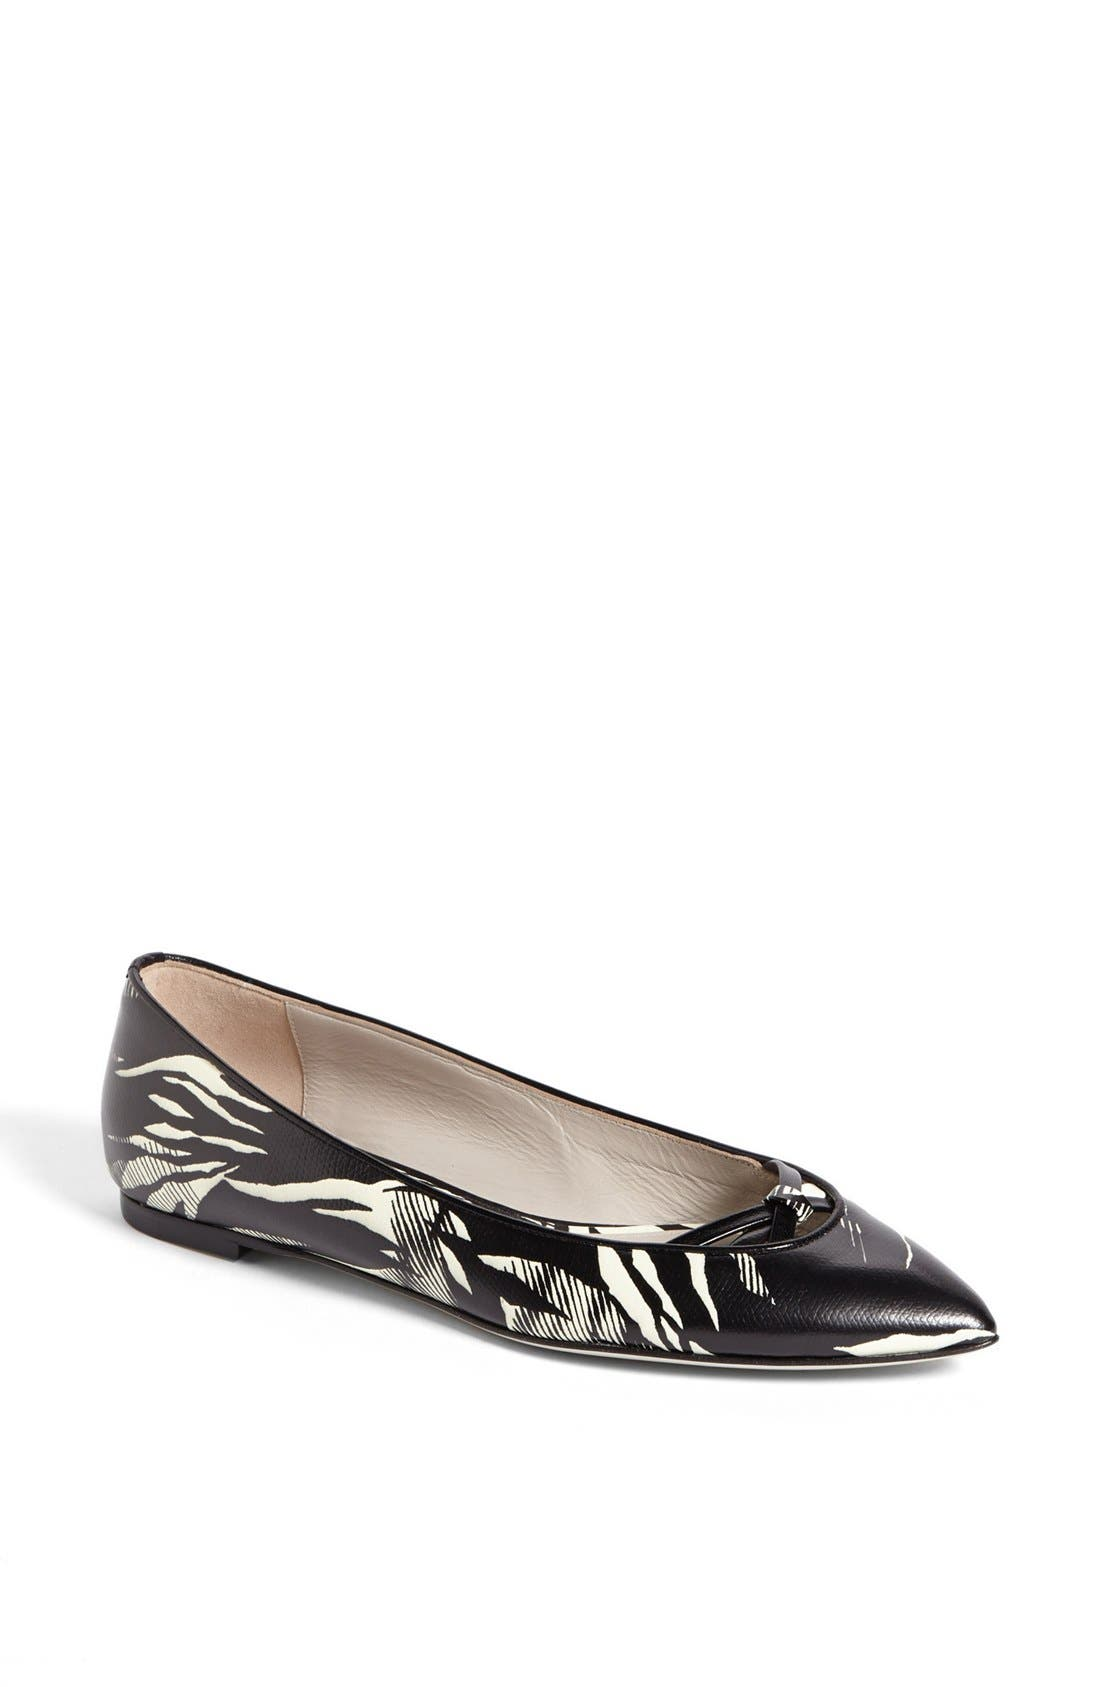 Main Image - Jason Wu Tropical Print Ballet Flat